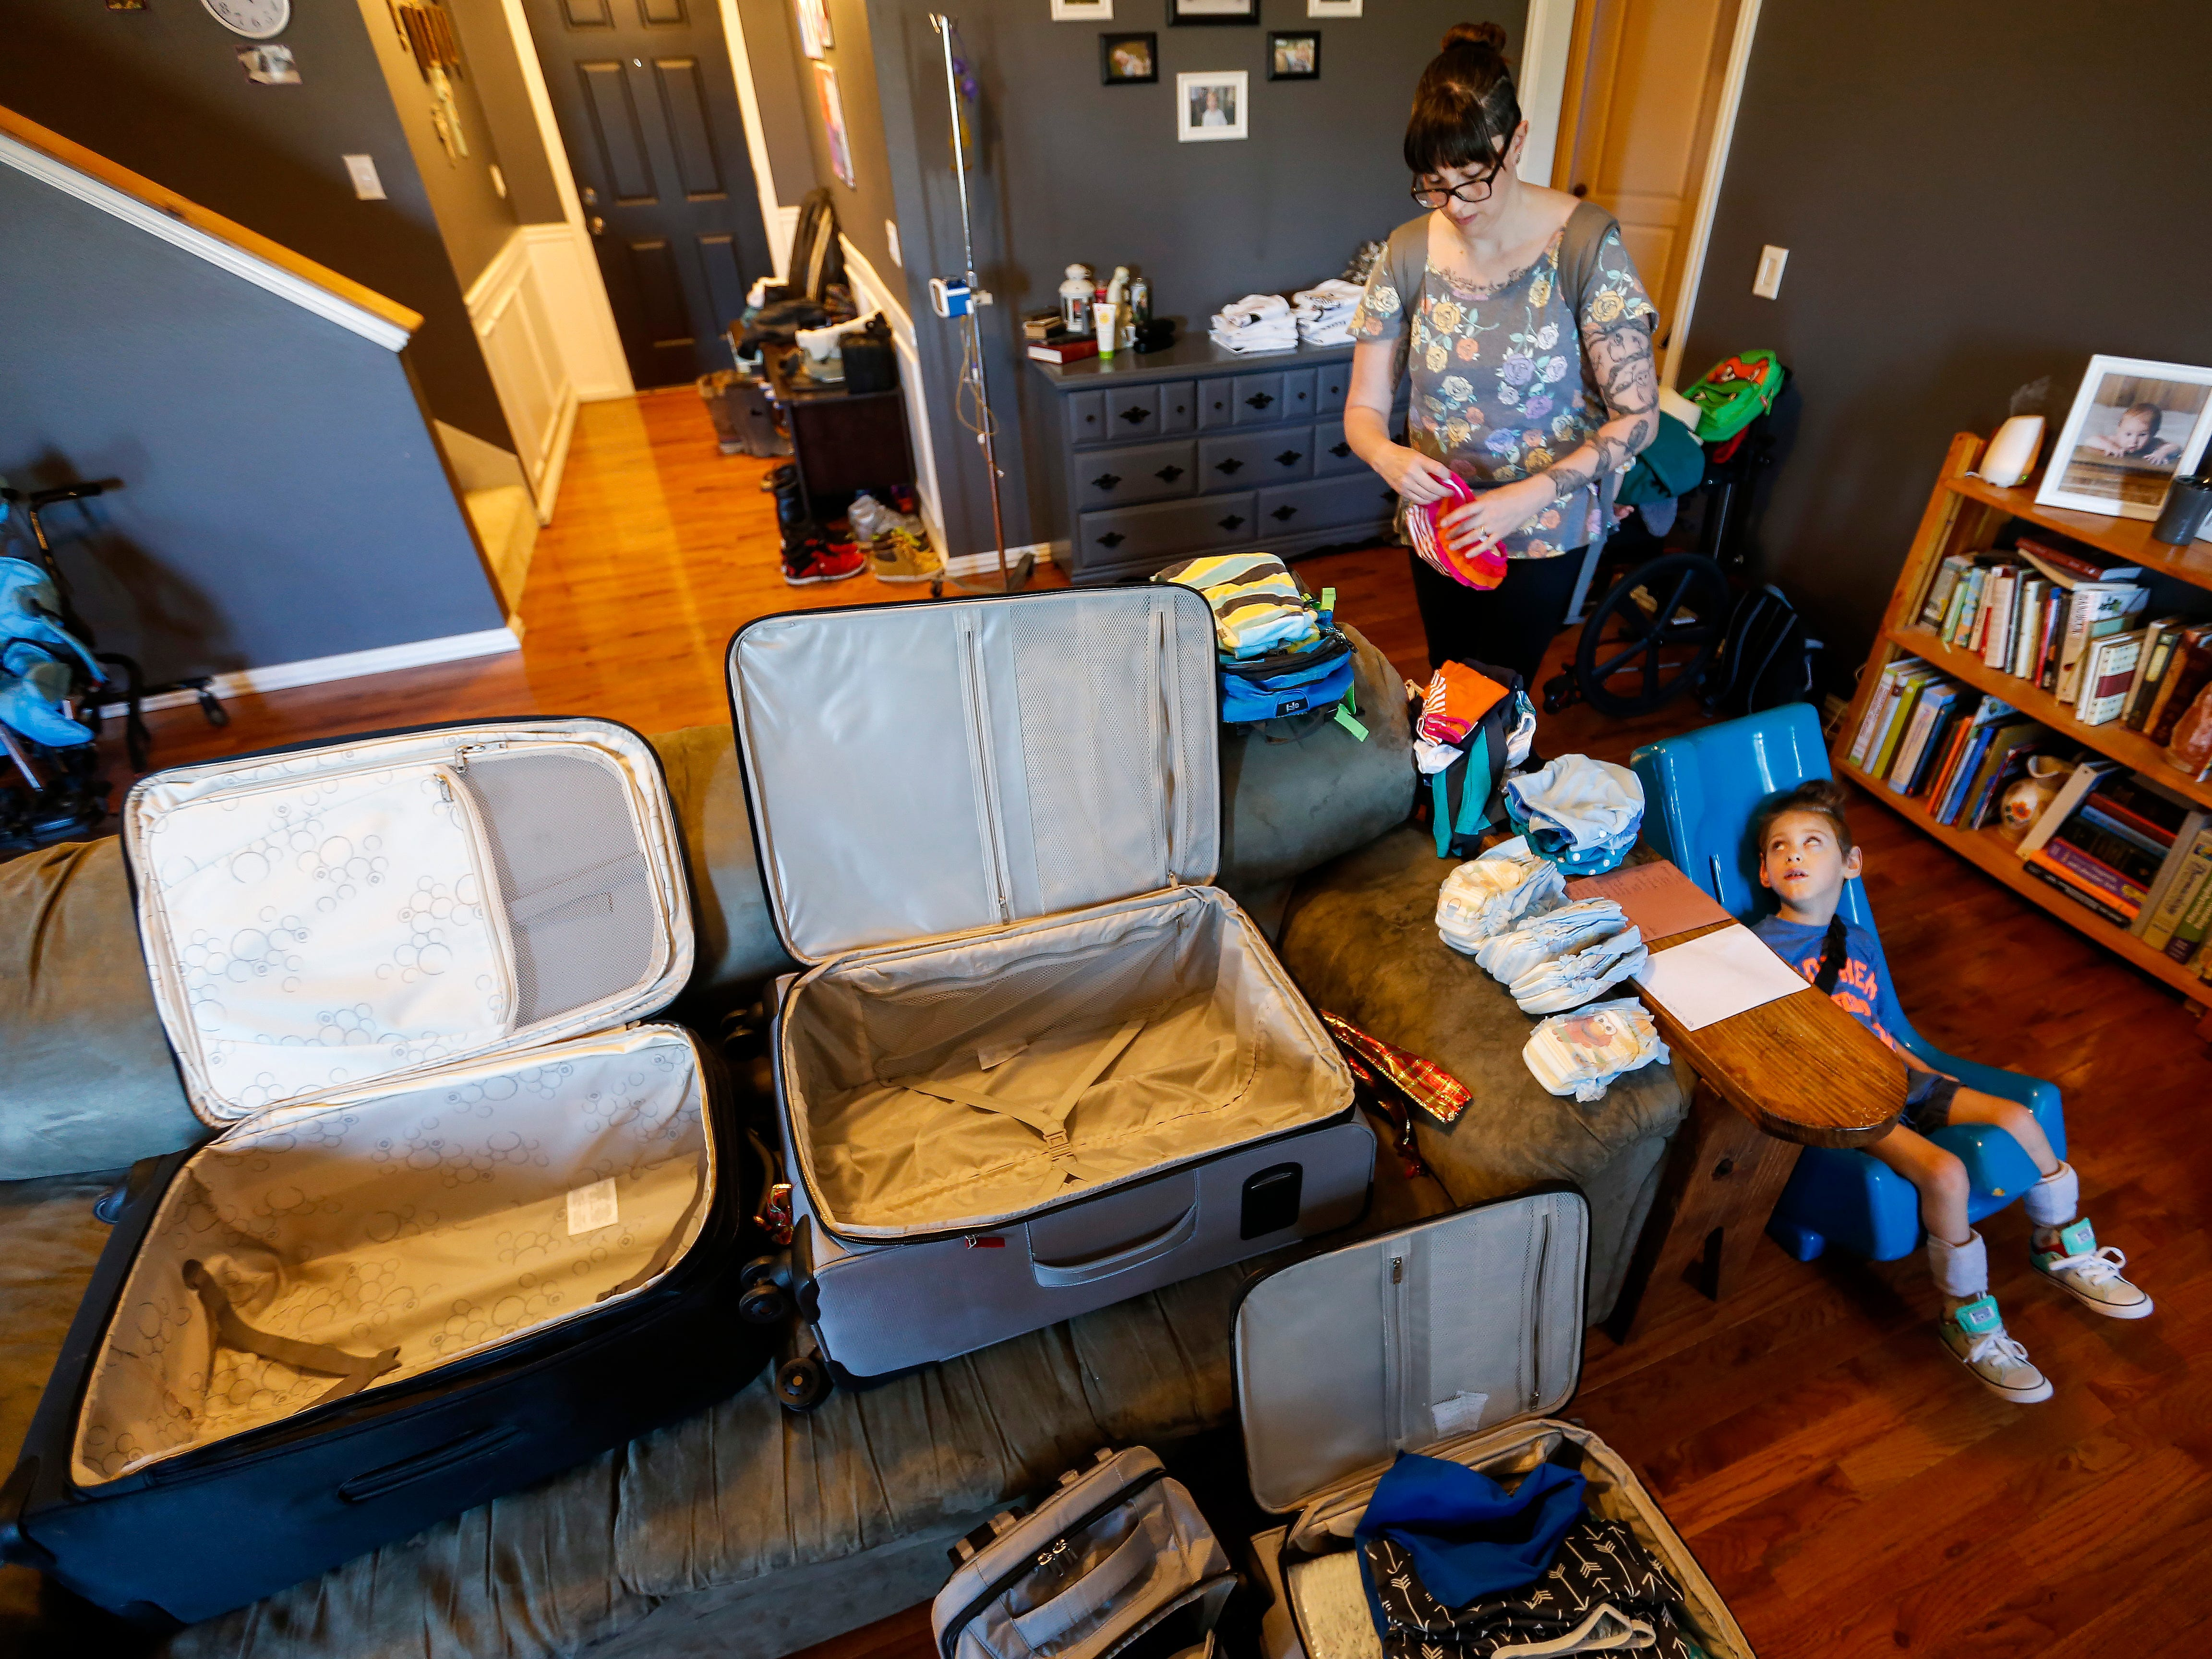 Ayden Markum, 5, watches as his mom Ashley Markum packs for their Make-A-Wish trip at their home in Rogersville on Friday, April 27, 2018.